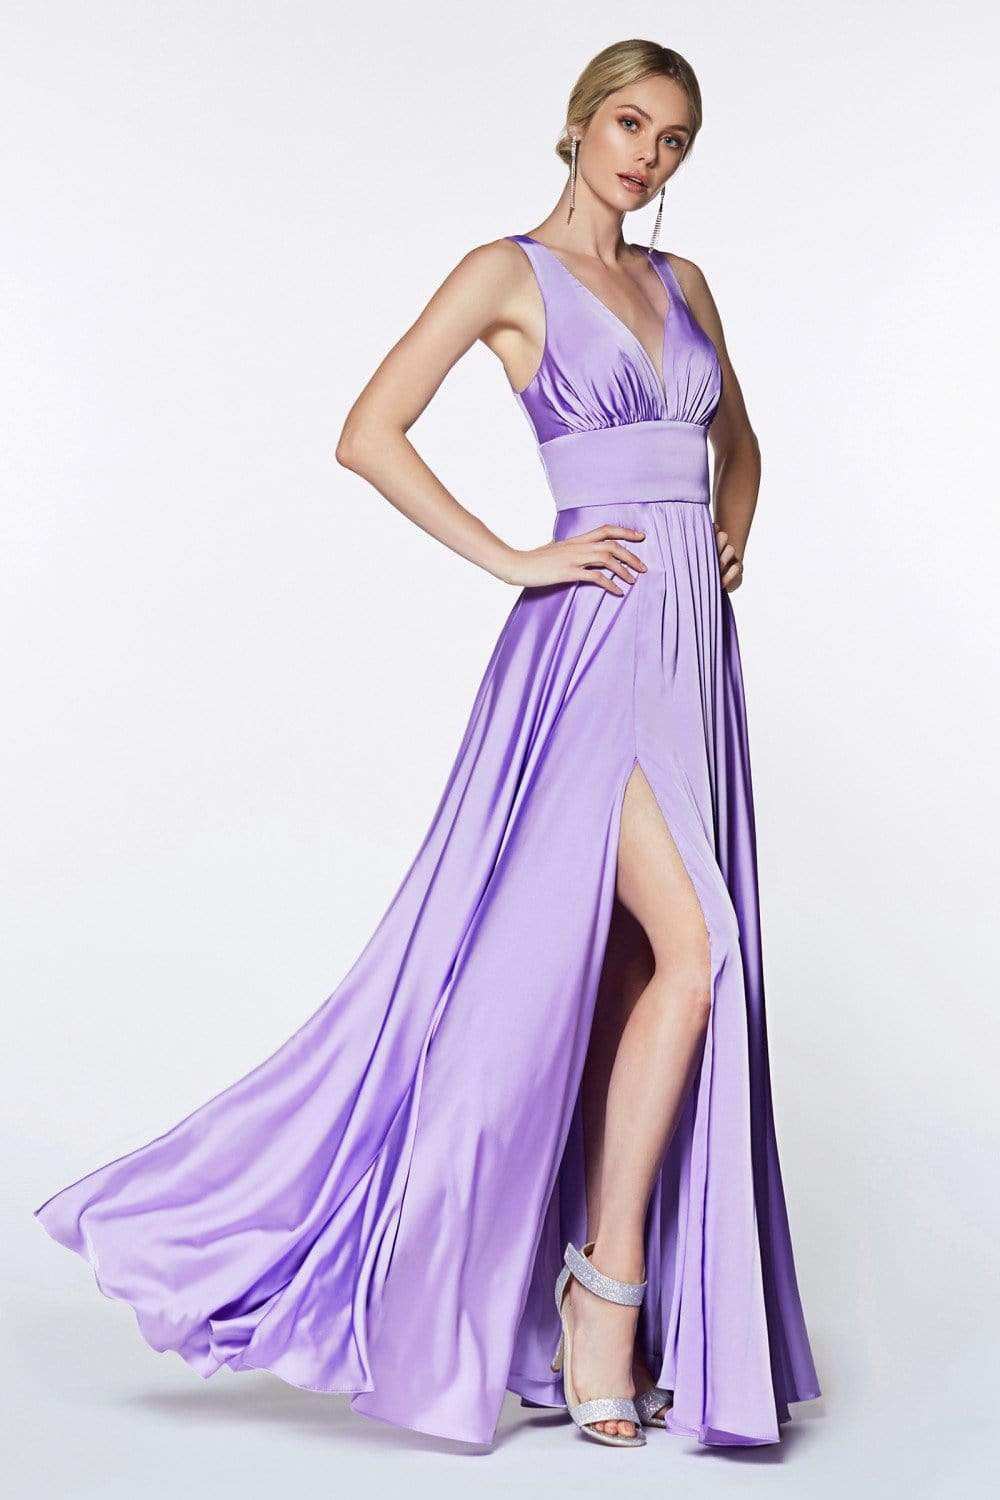 Cinderella Divine - 7469 Sleeveless V Neck Flowing Satin Gown in Purple